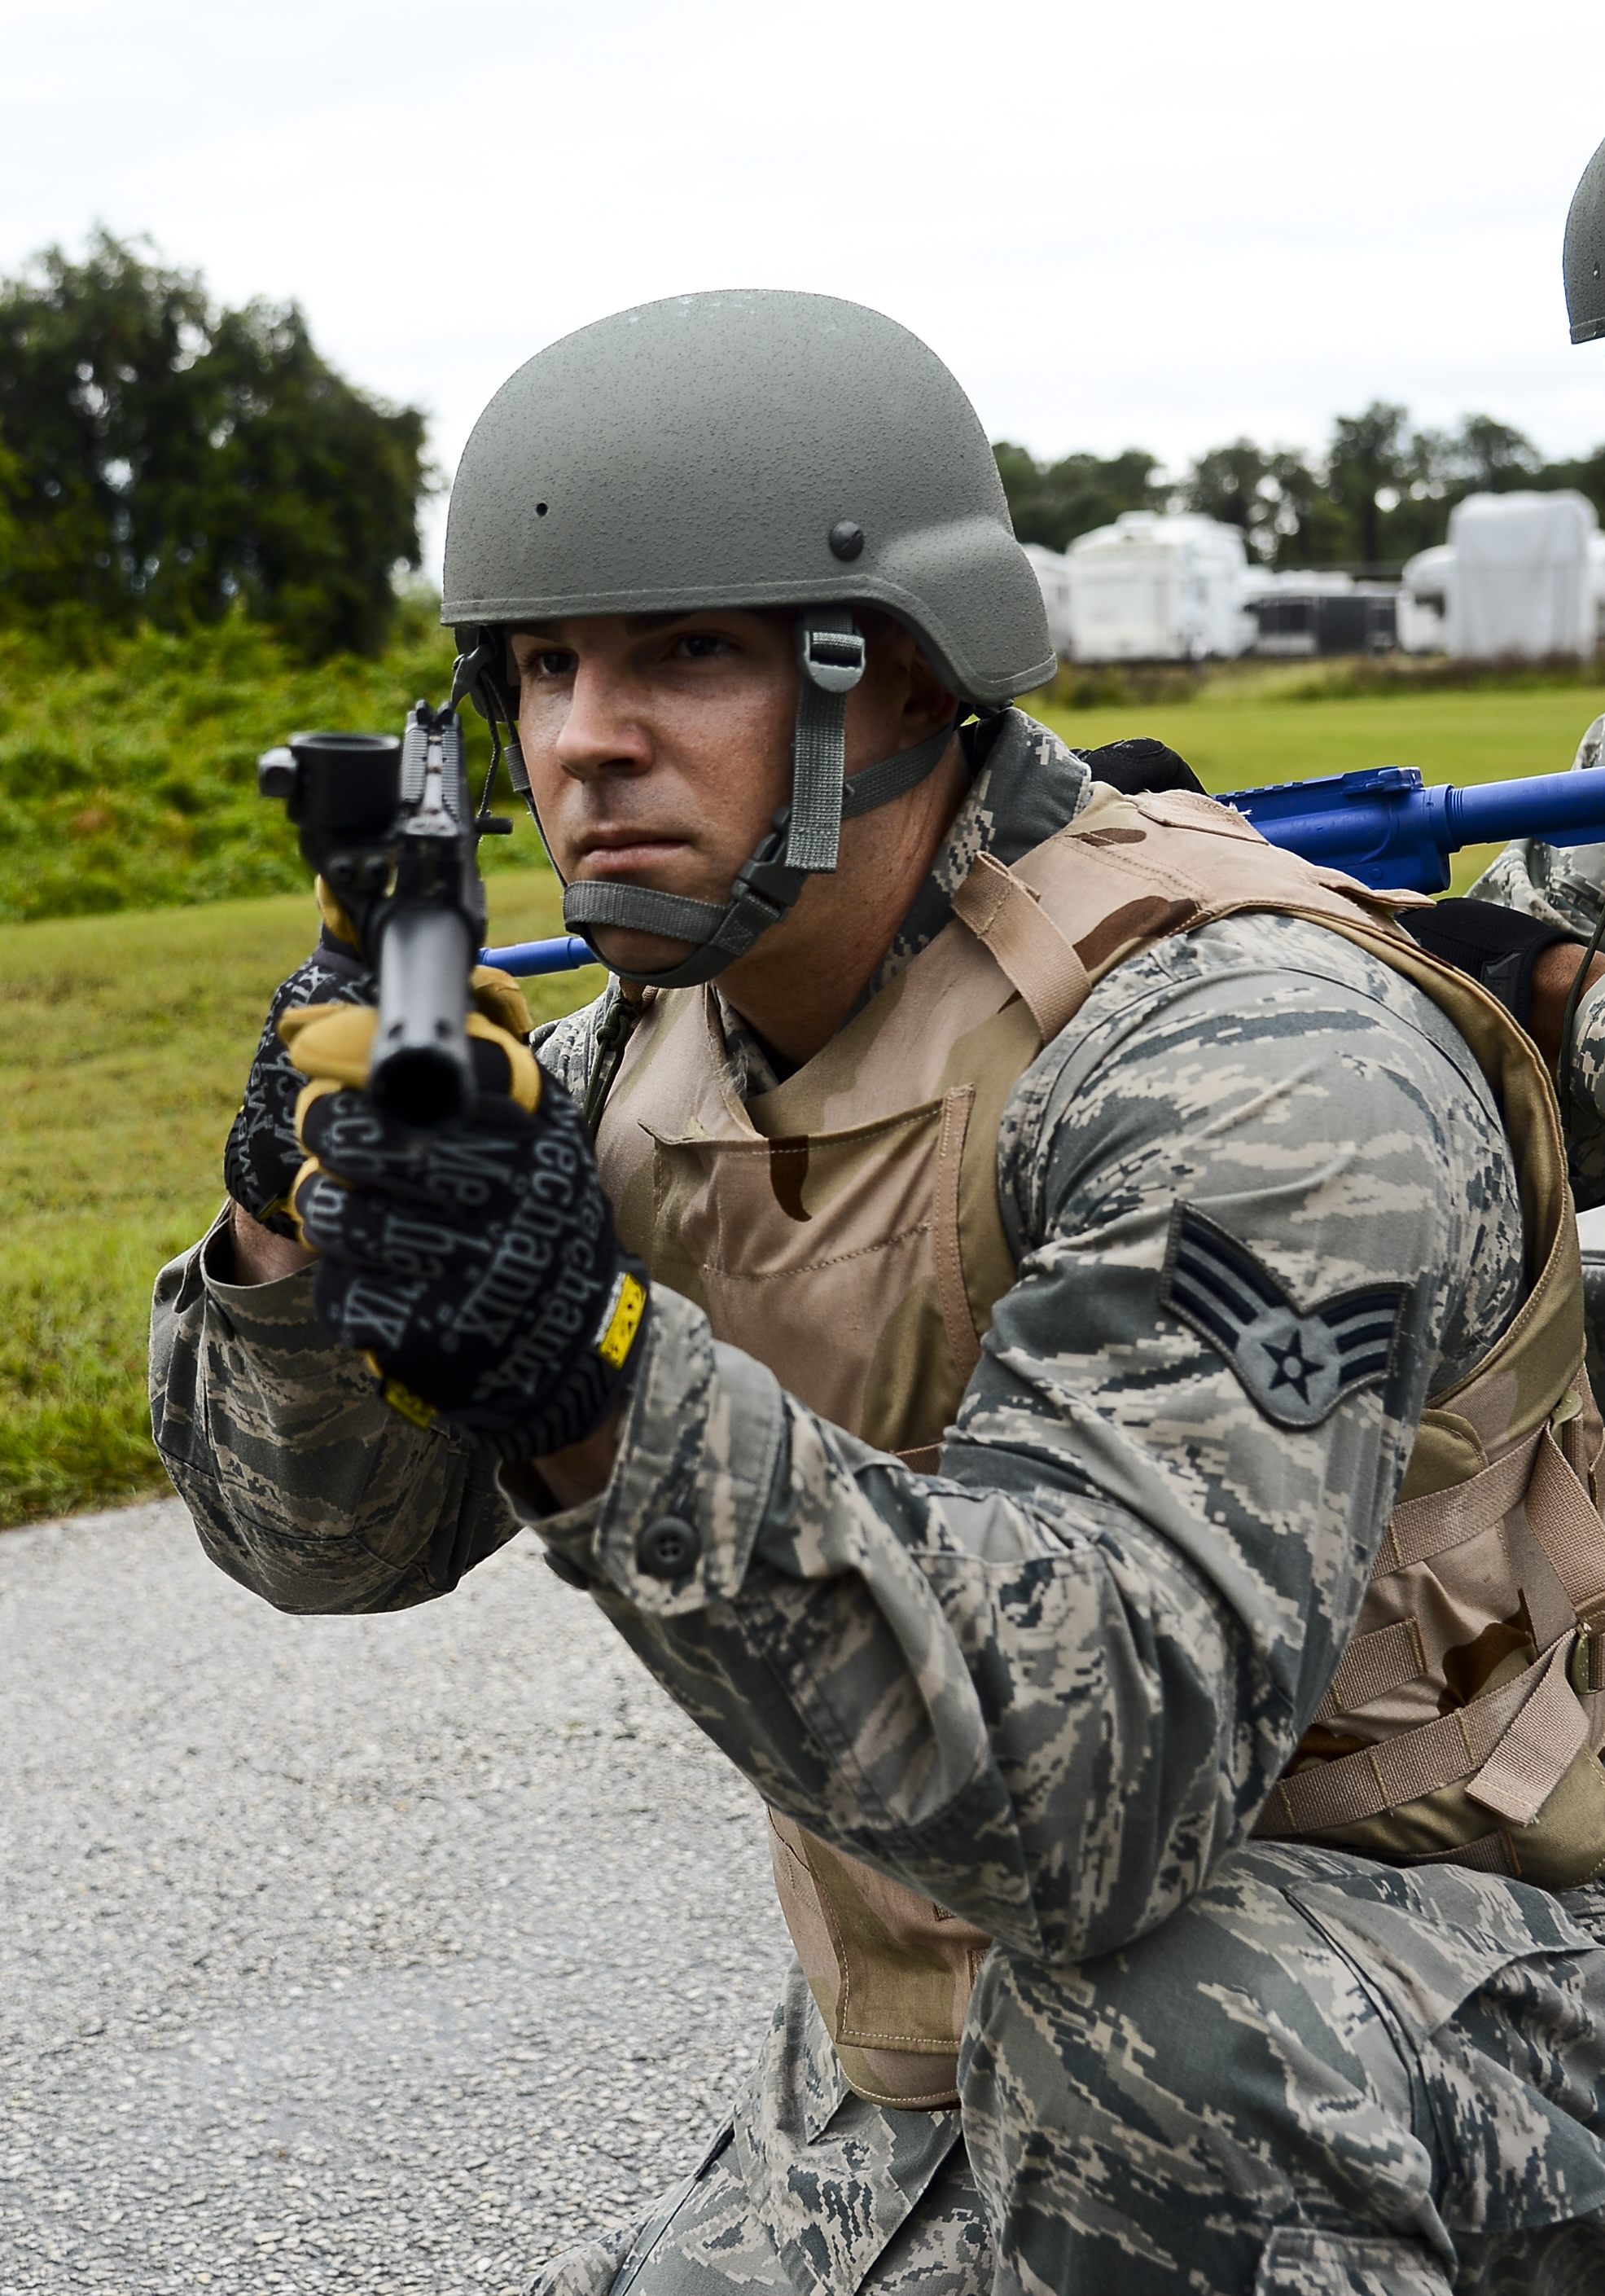 Vehicle Ops ramps up realistic training > MacDill Air Force Base ...